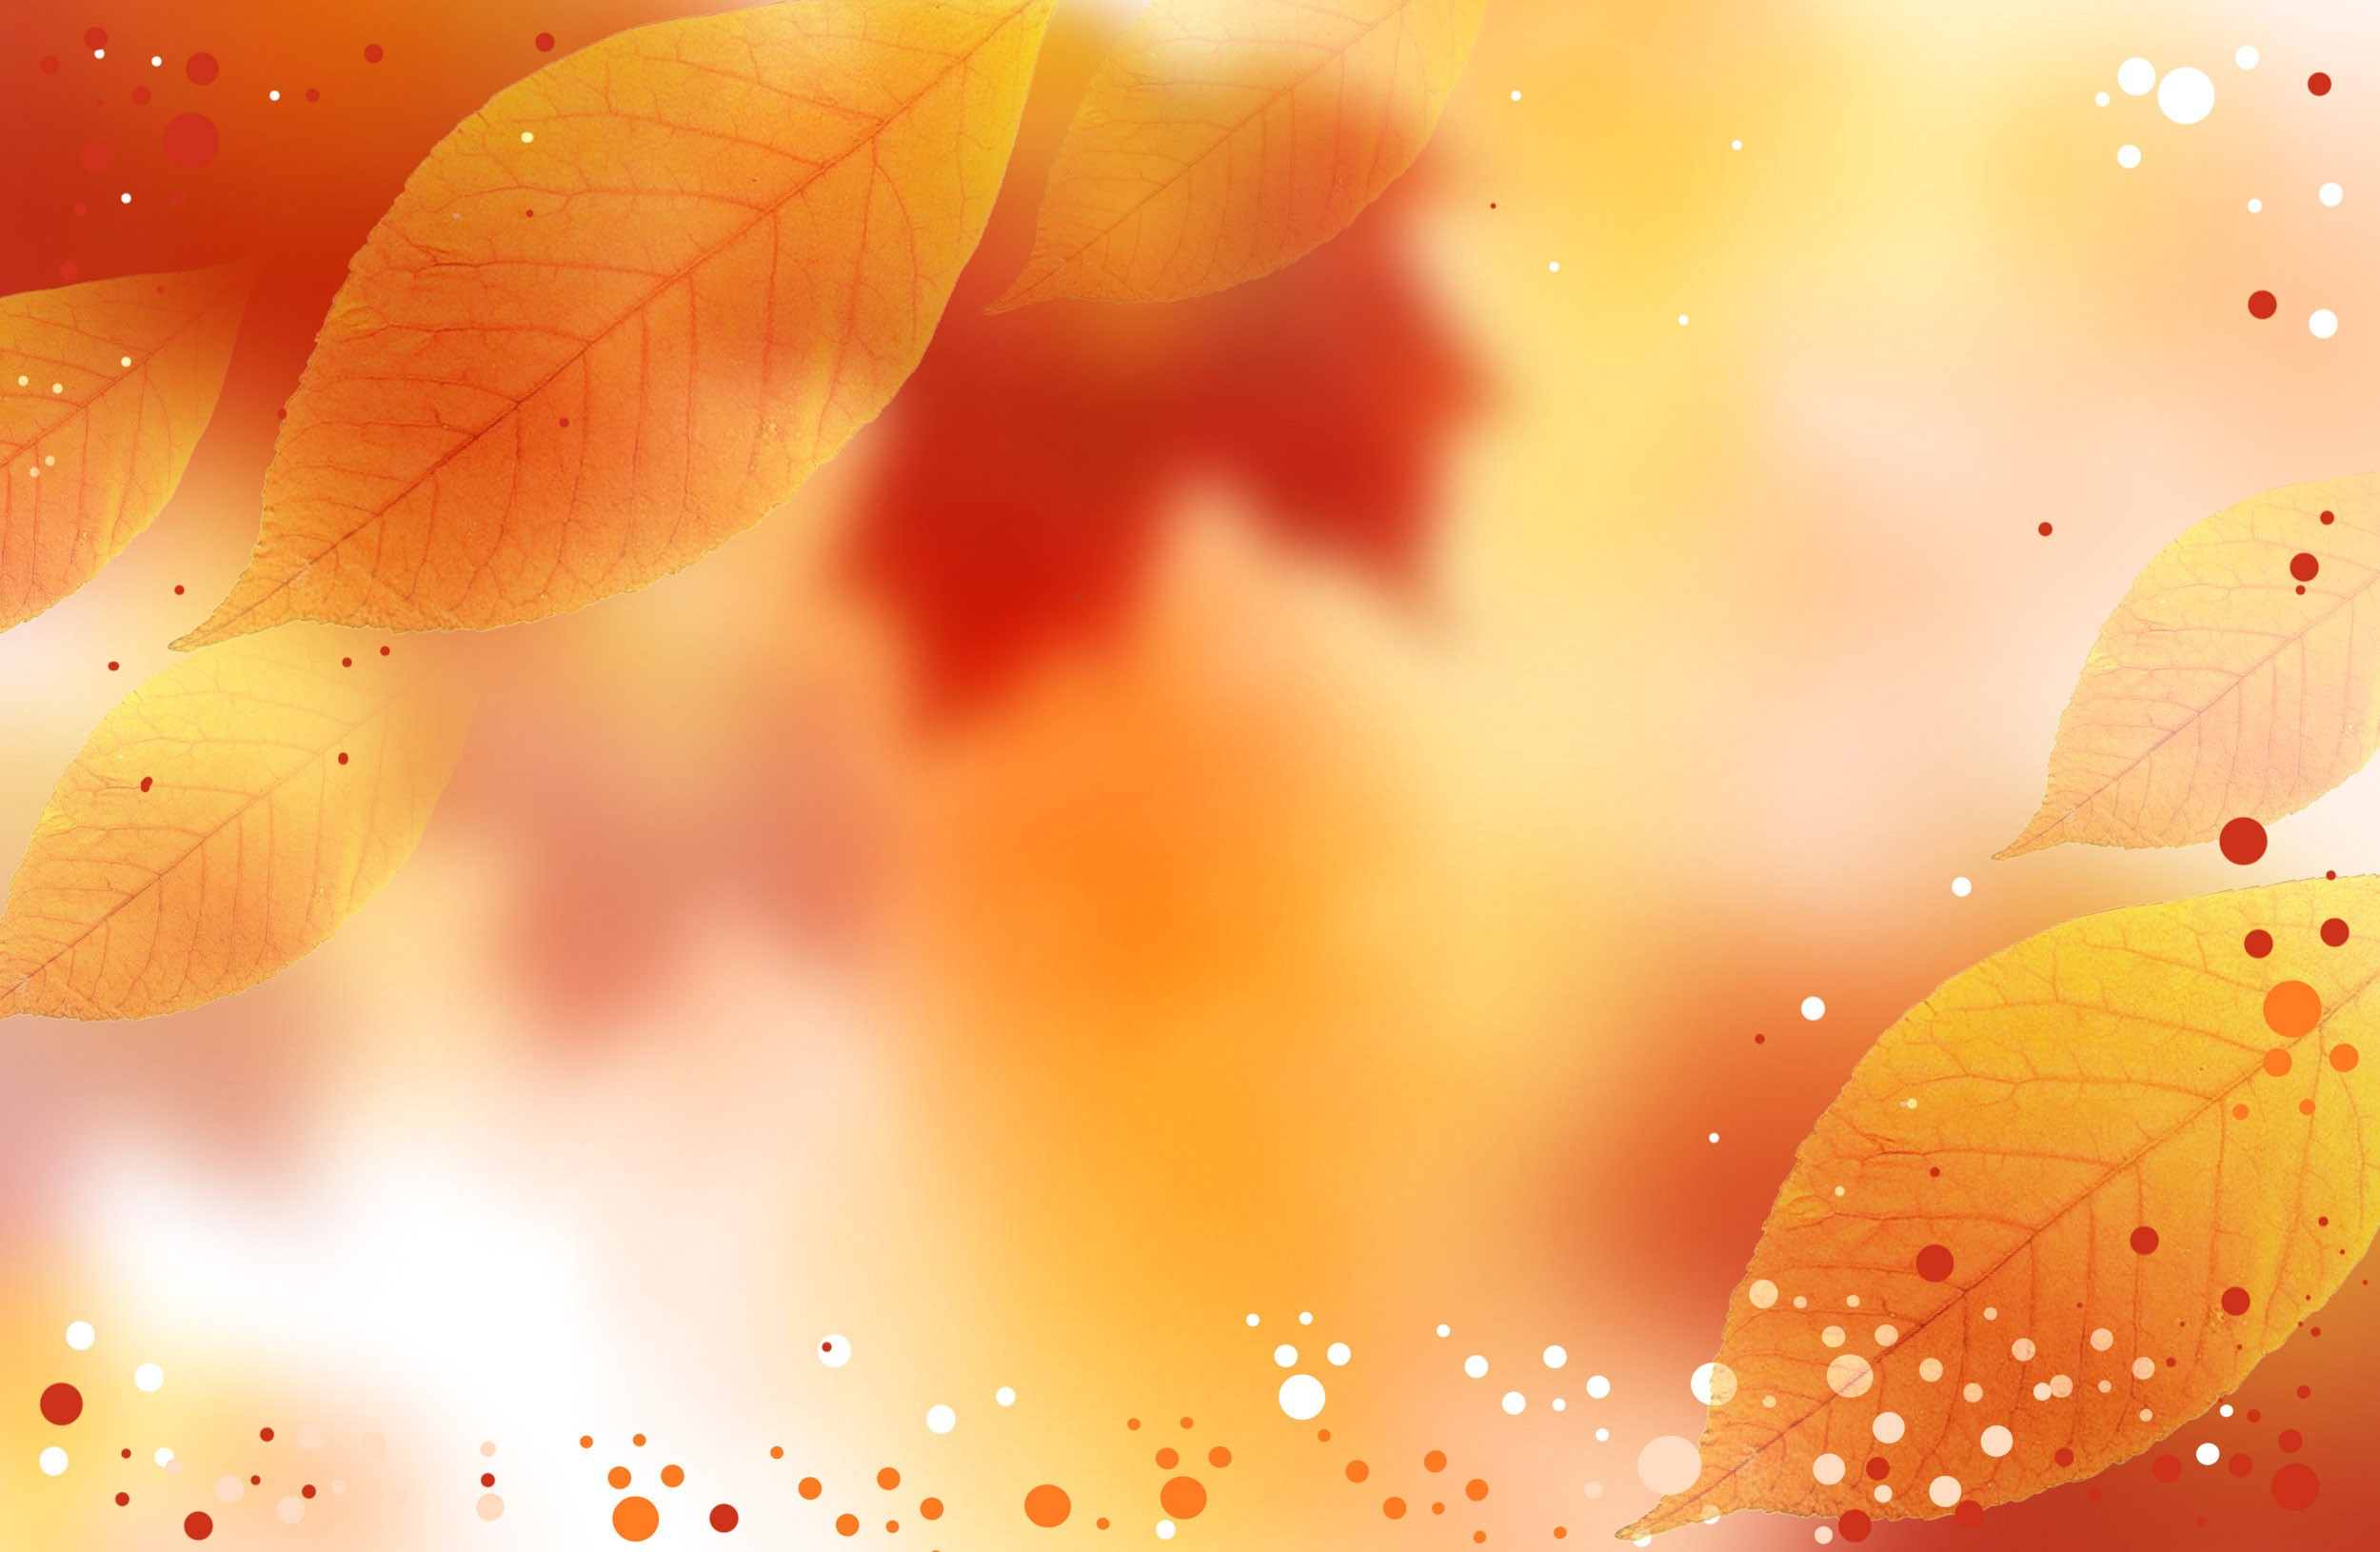 Fall Wedding Background Hd Wallpaper Wallpapersafari